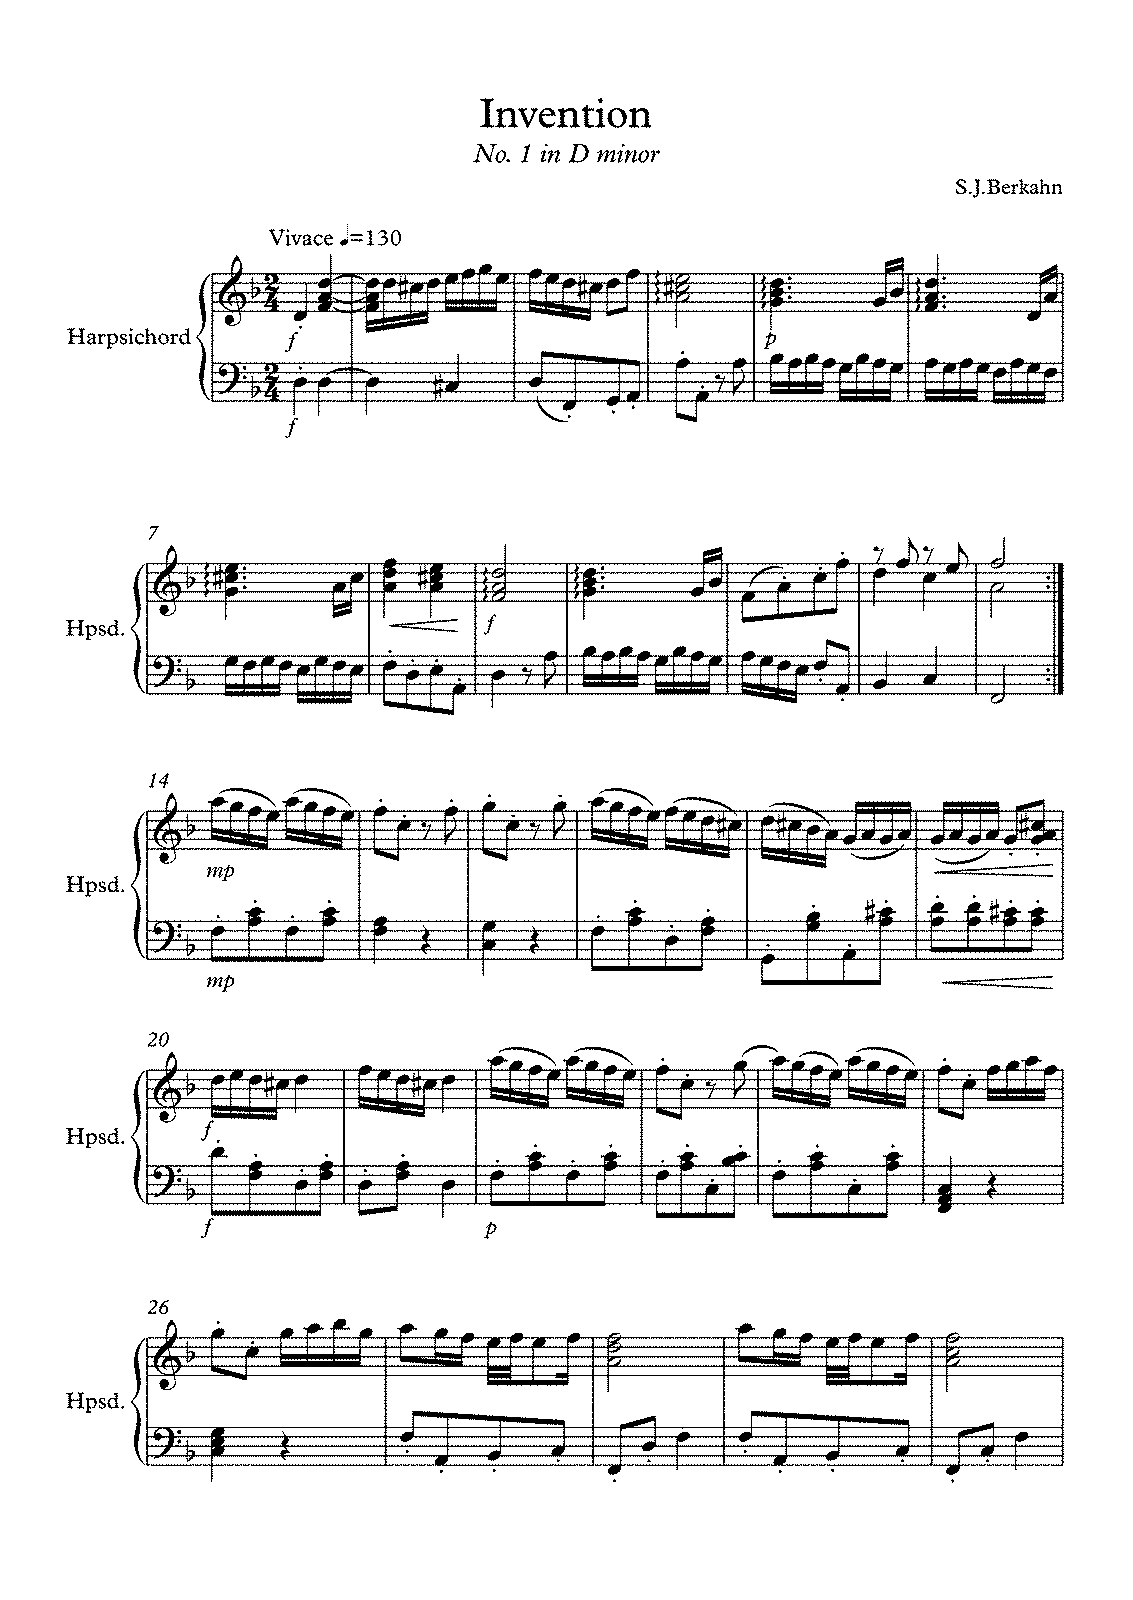 PMLP435291-Invention No. 1 - Full Score.pdf